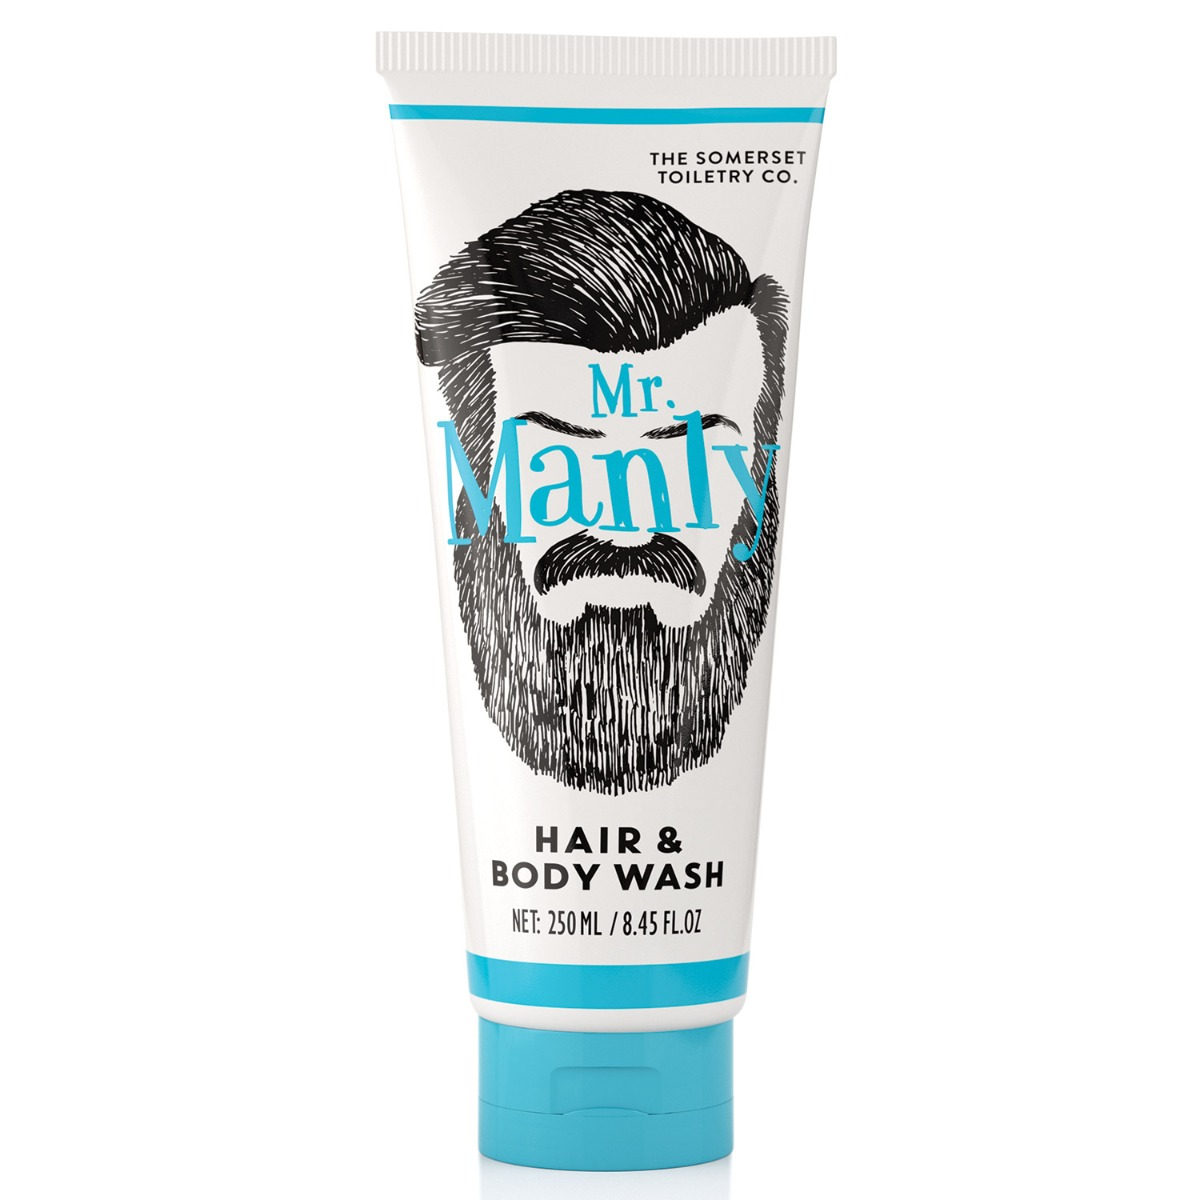 The Somerset Toiletry Co Mr Manly Hair & Body Wash 250ml